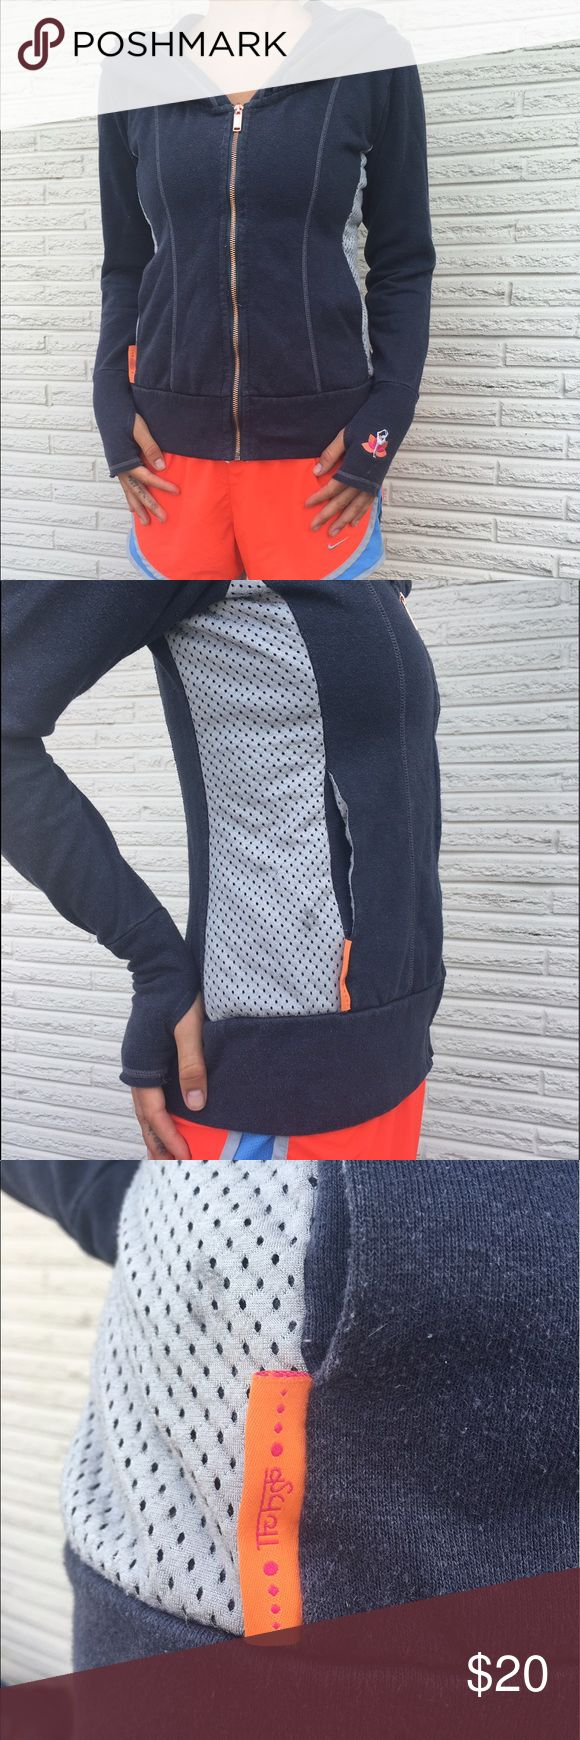 Yoga hoodie- nutti yogini Yoga clothing brand. Nutti Yogini hoodie. Super cute and cozy.  Offers and trades welcome! Also anything in my closet can be made into one order!  Beyond Yoga Tops Sweatshirts & Hoodies